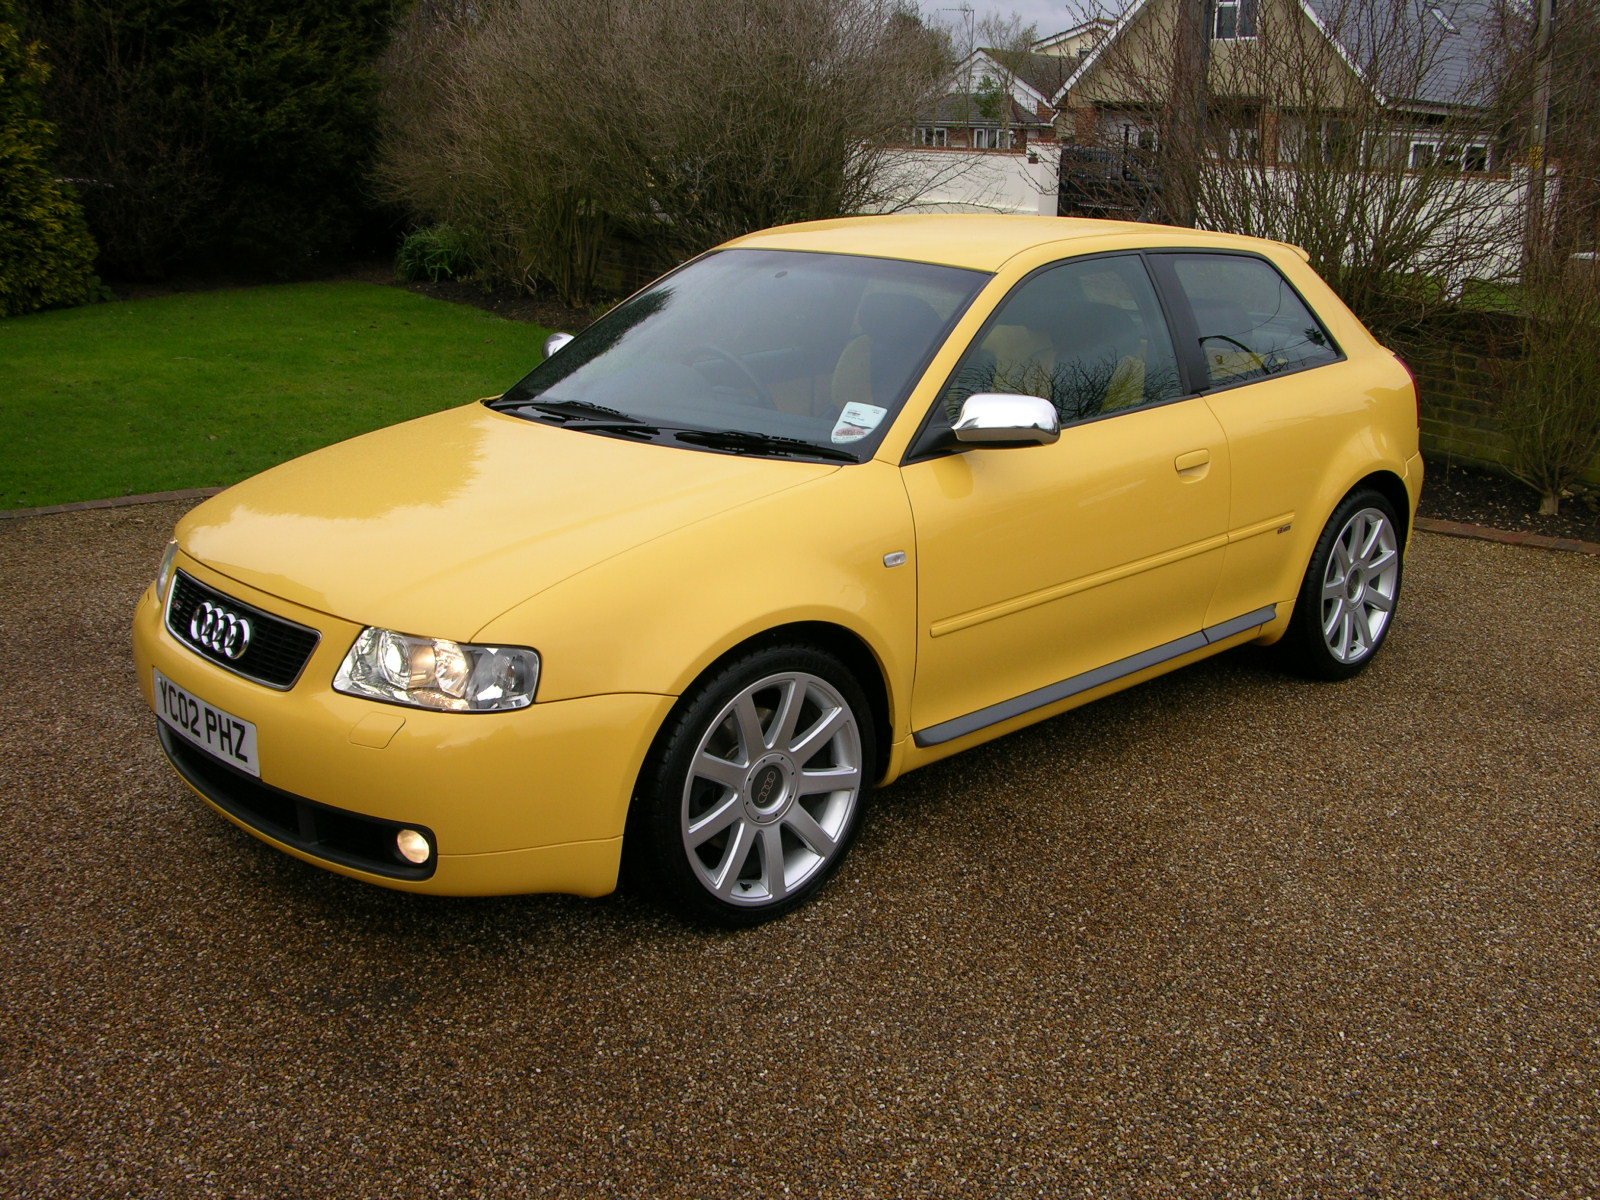 file audi s3 2002 imola yellow flickr the car spy 13 jpg wikimedia commons. Black Bedroom Furniture Sets. Home Design Ideas